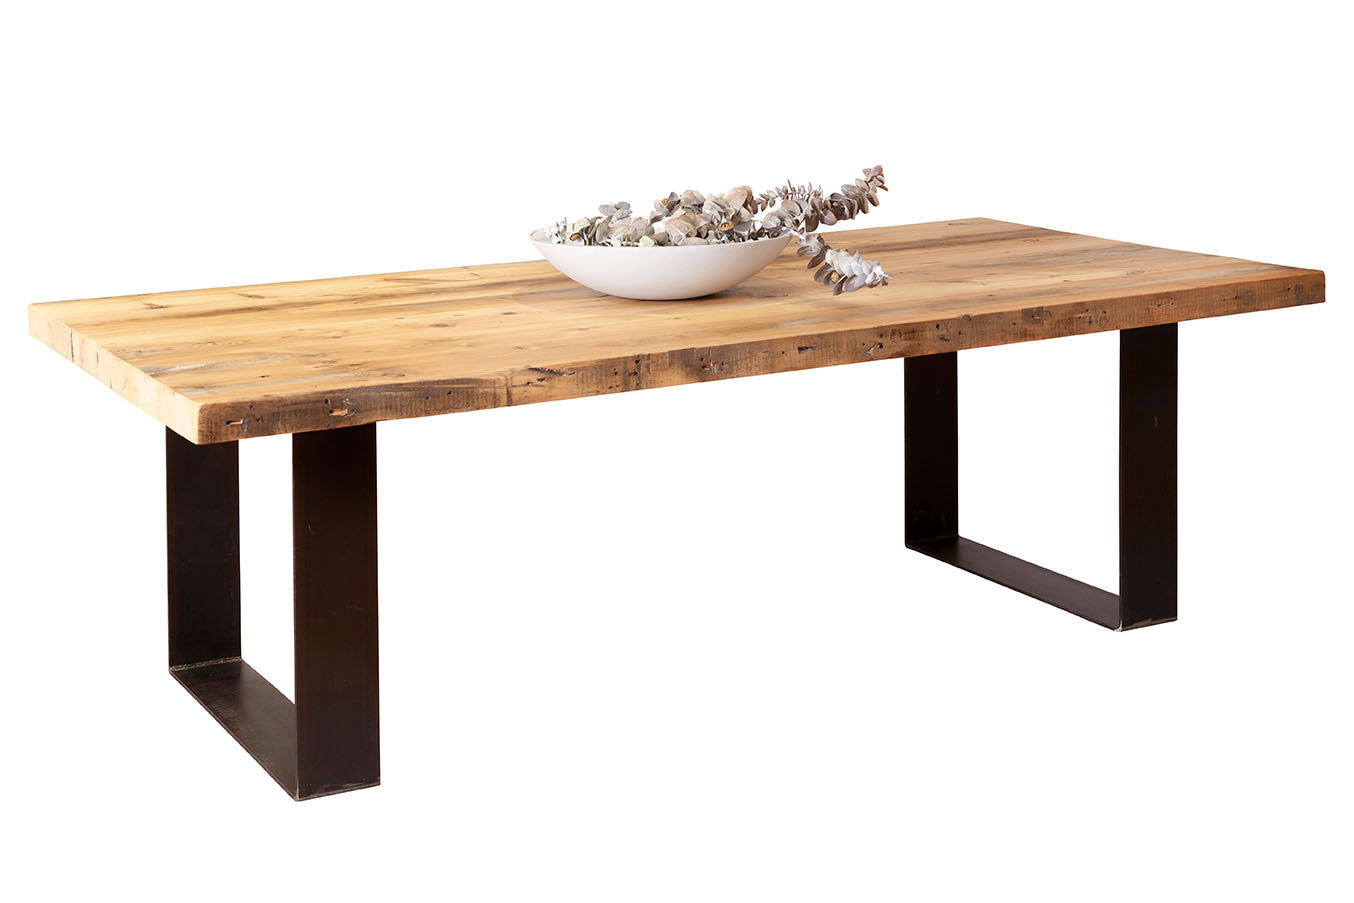 Recycled Baltic Timber Dining Tables with Steel Base  : Recycled Baltic Pine Plaistowe Dining Table Industrial Metal Base39518025 f563 4bde b242 94d7d1585294 from bespokefurnitureperth.com.au size 1354 x 903 jpeg 59kB